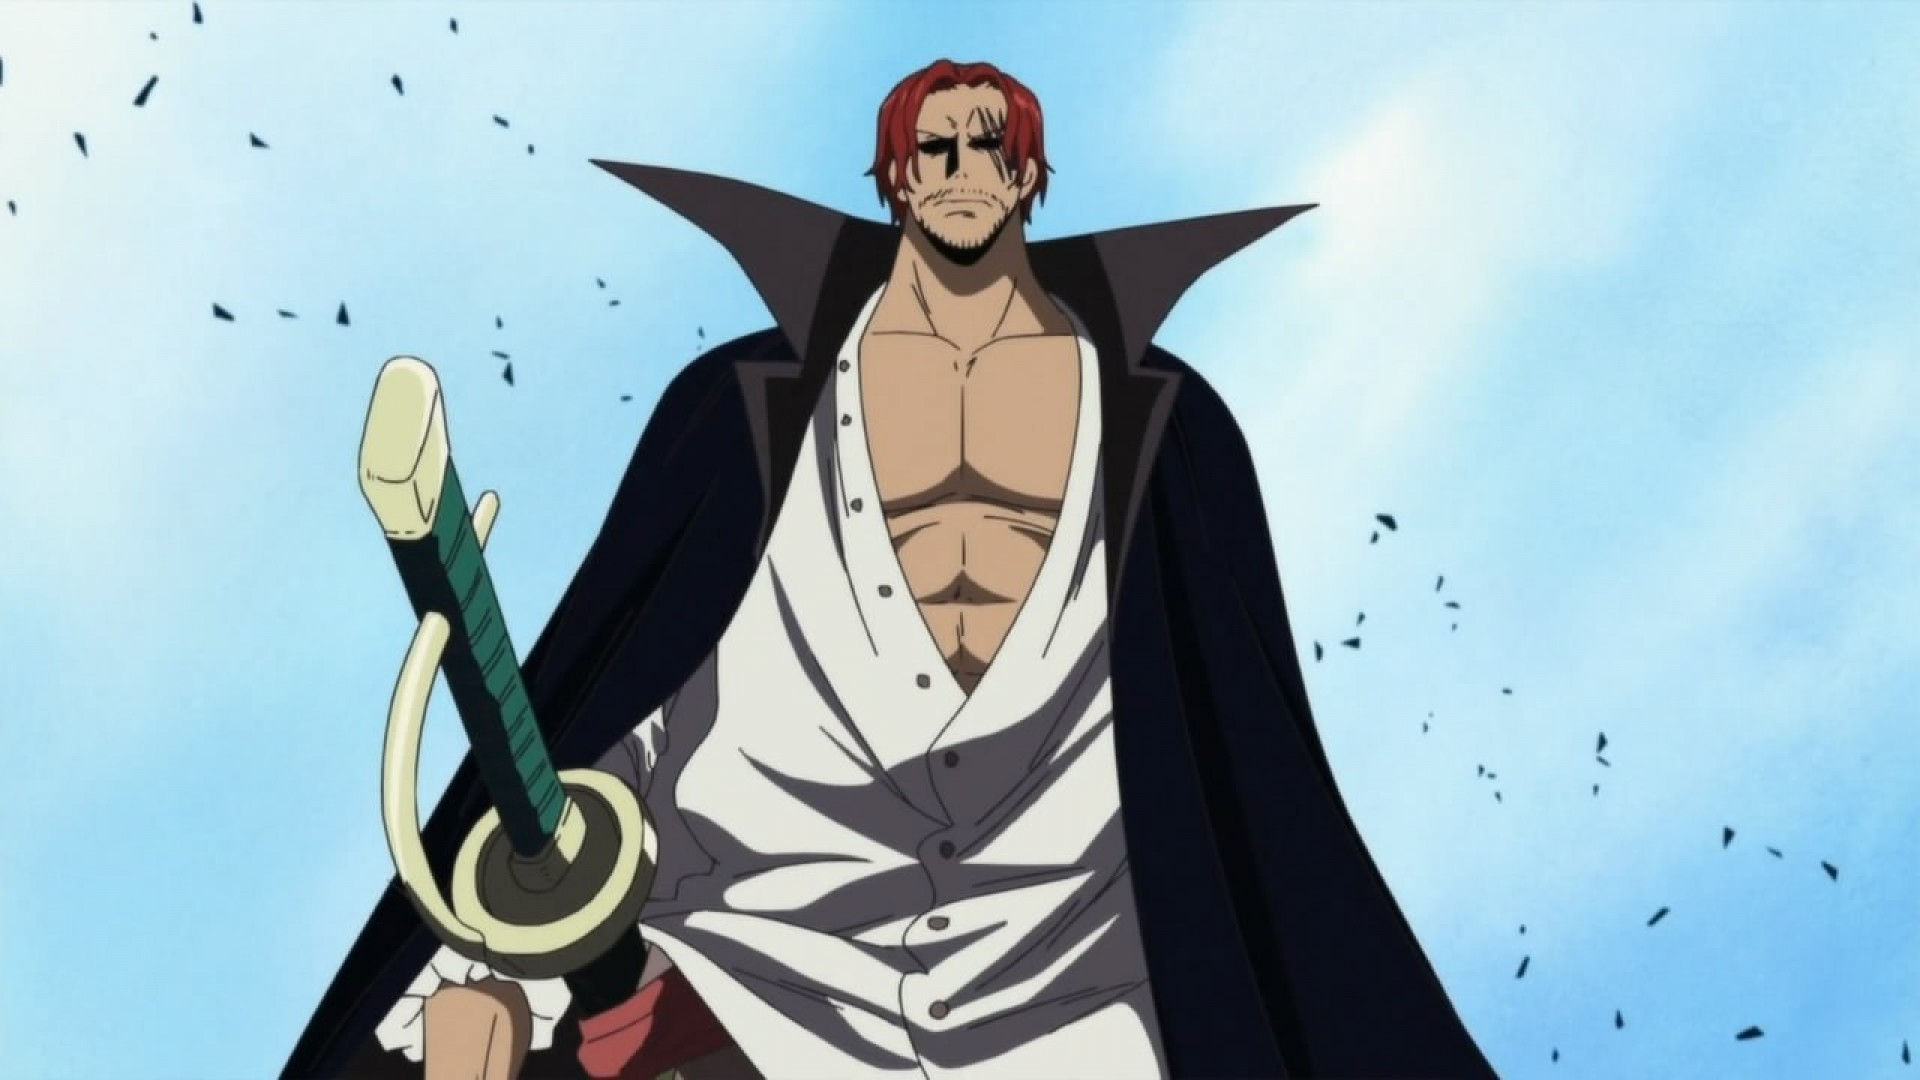 Free download SimplyWallpaperscom One Piece anime Shanks ...